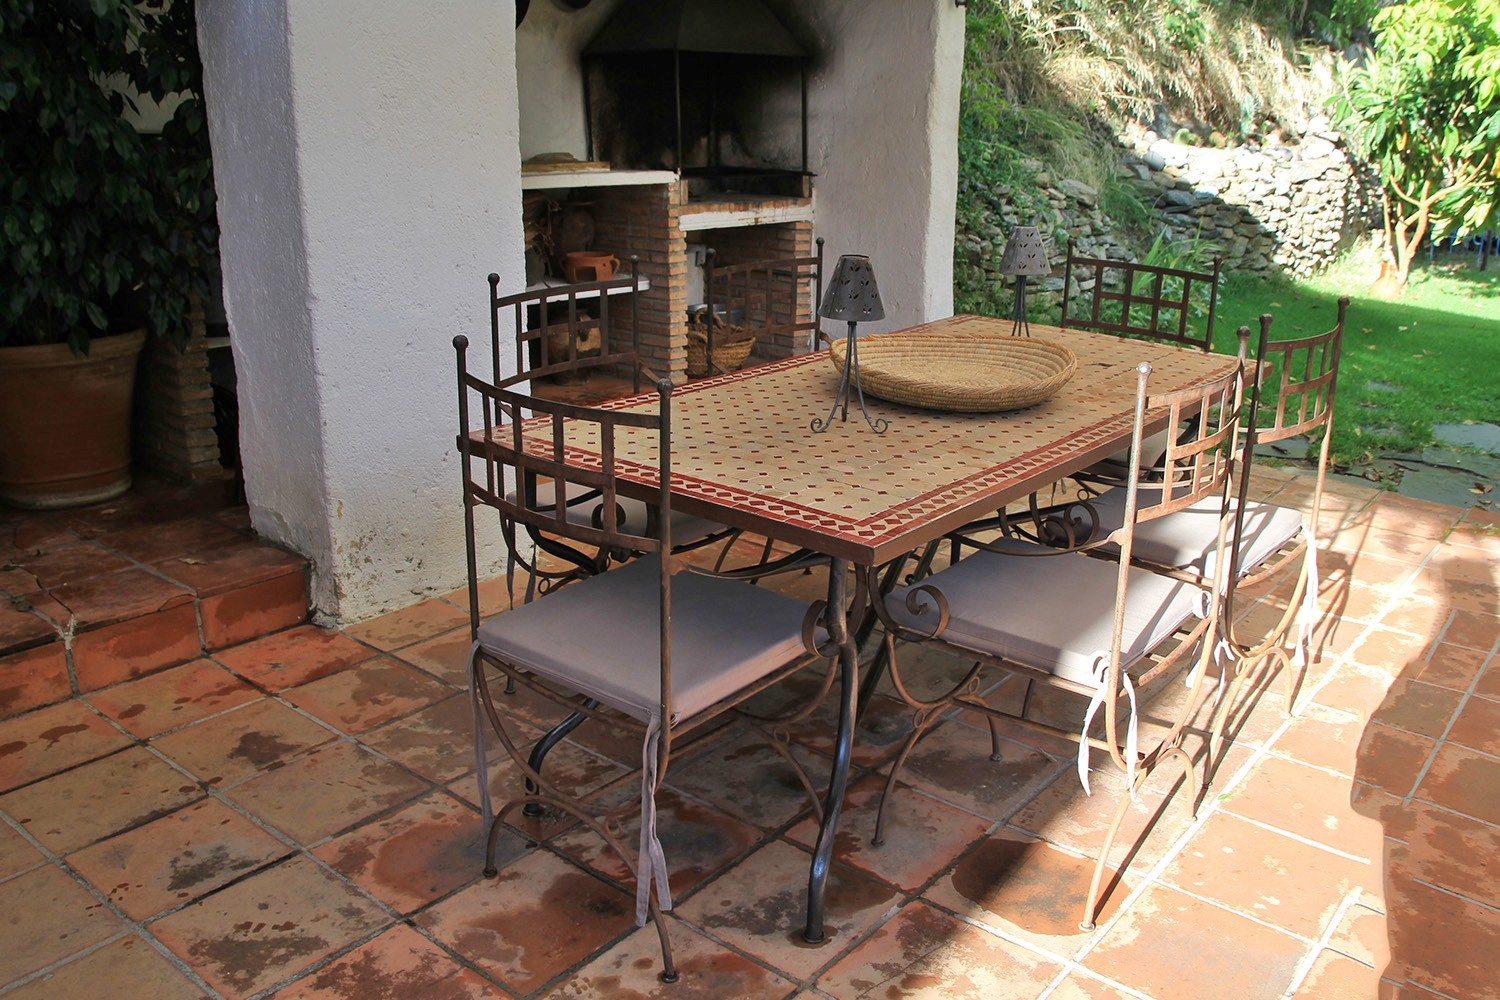 Terrace next to the kitchen